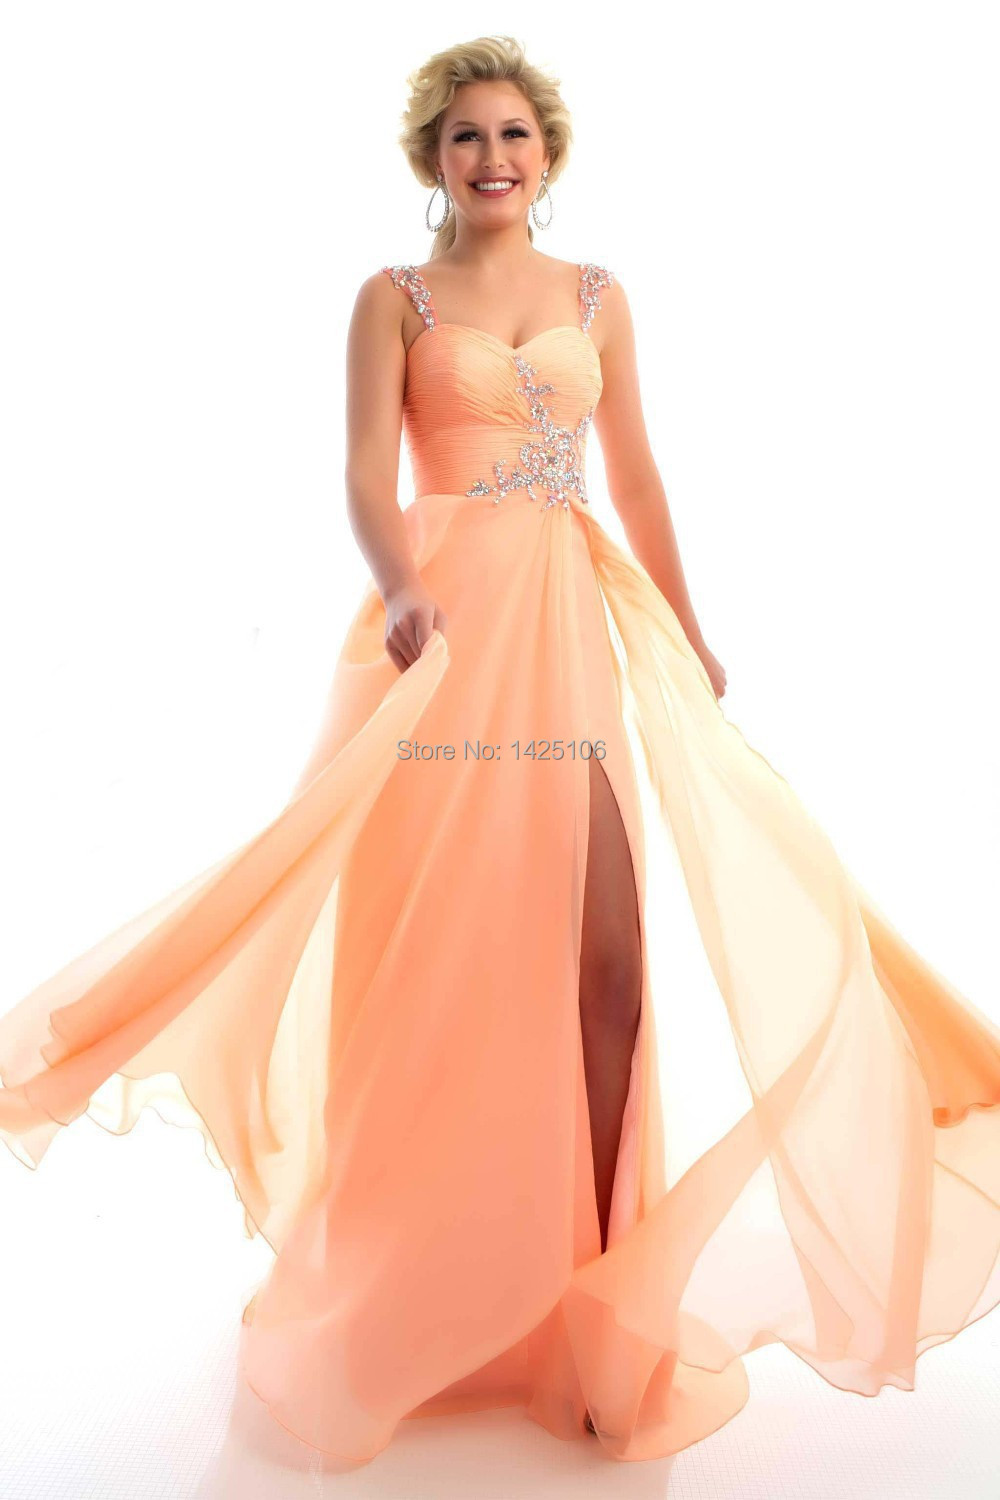 Awesome Melon Colored Prom Dresses Ensign - Colorful Wedding Dress ...